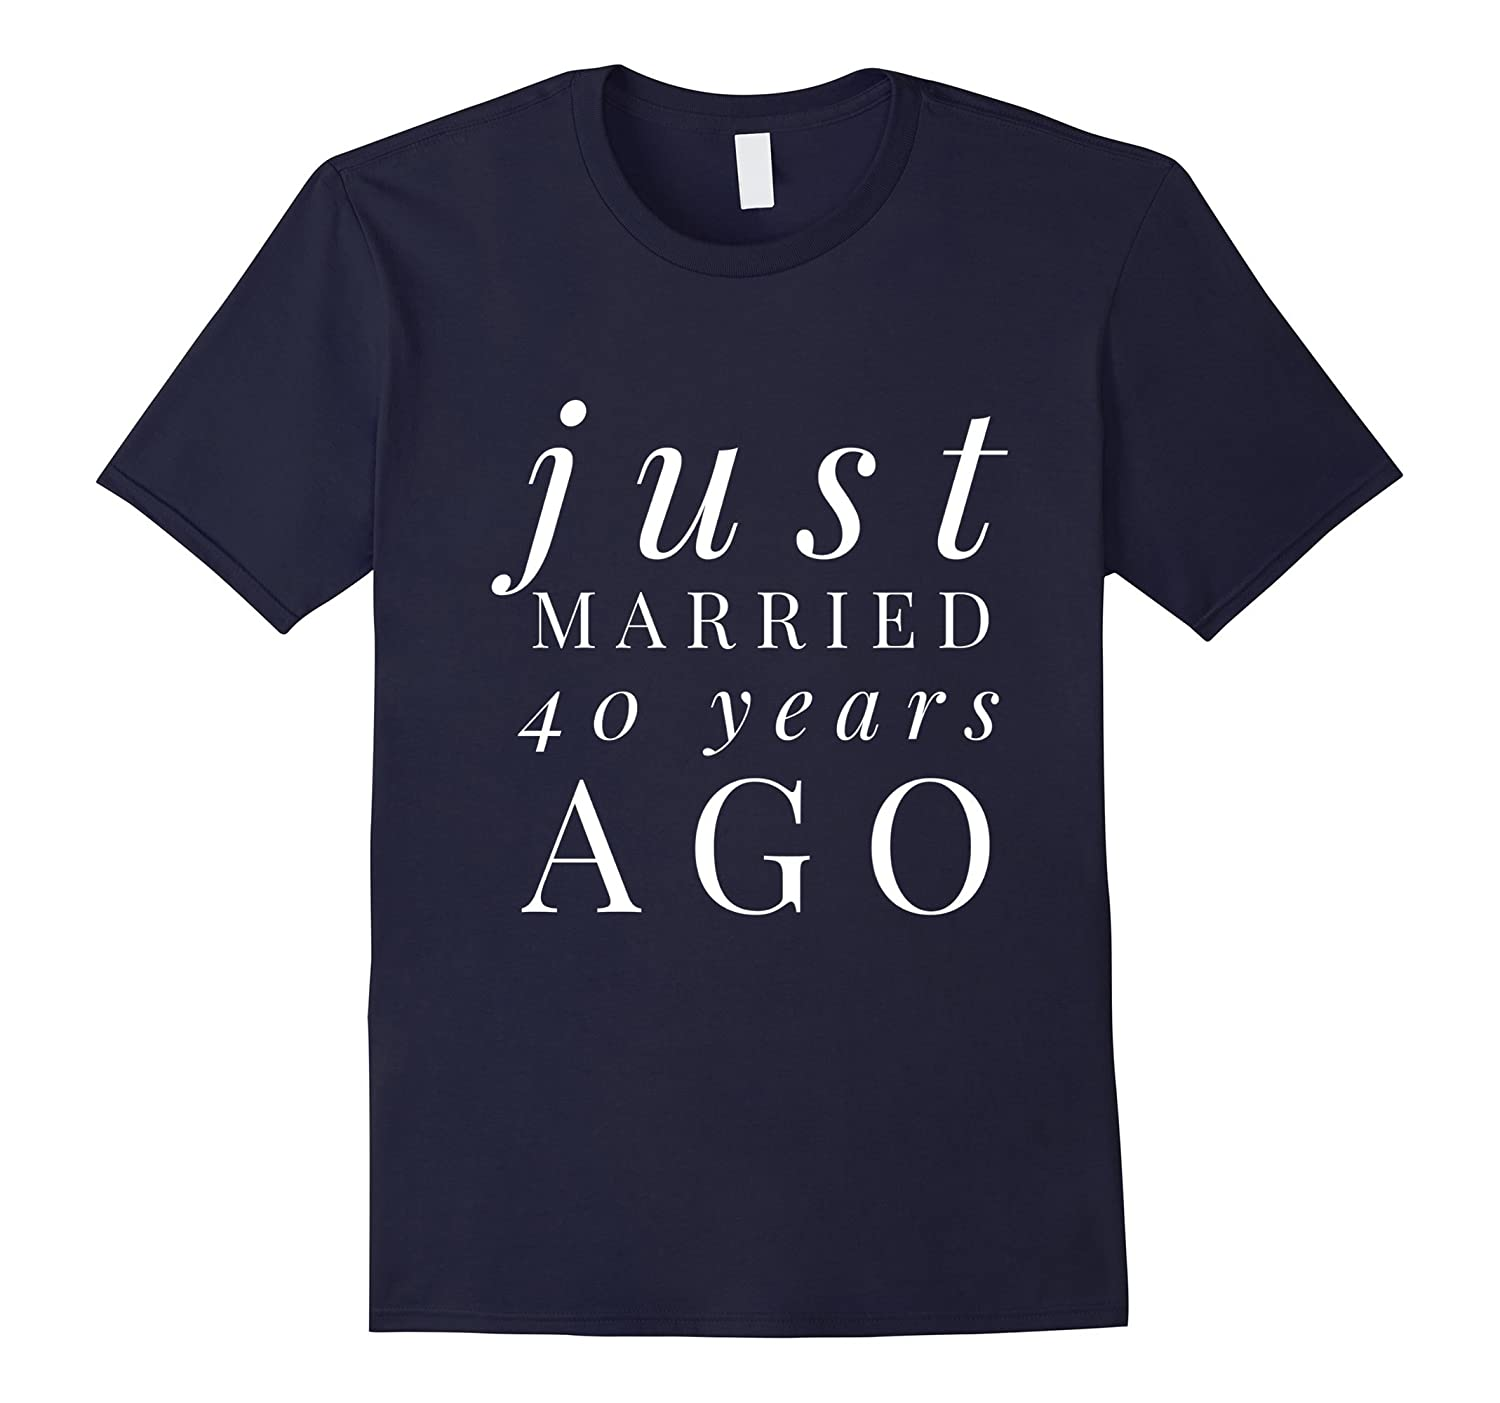 Funny Just Married 40 Years Ago Wedding Anniversary T-shirt-TJ